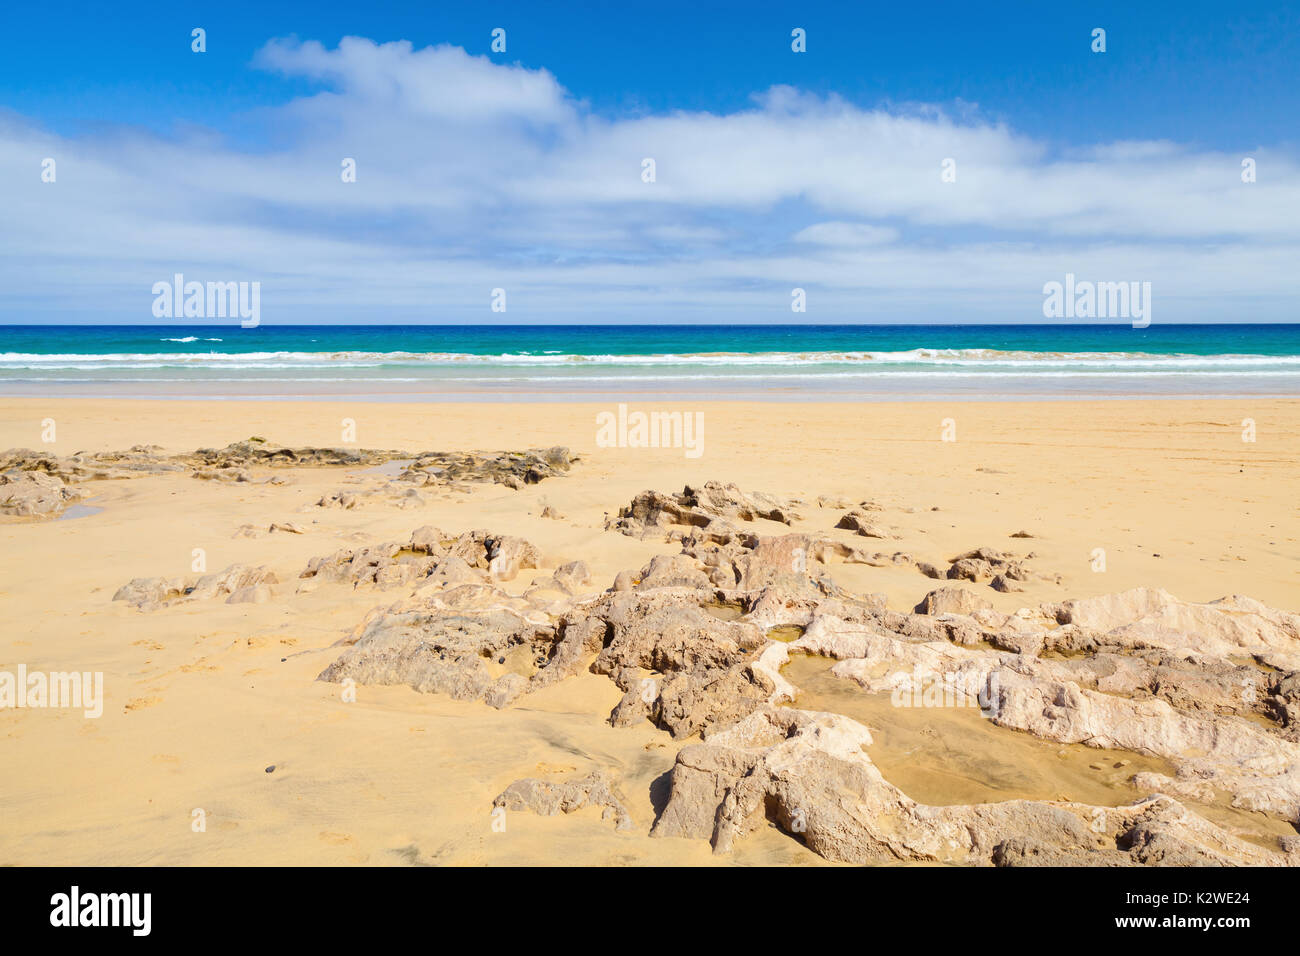 Sandstone rocks on the beach of Porto Santo, island in the Madeira archipelago - Stock Image